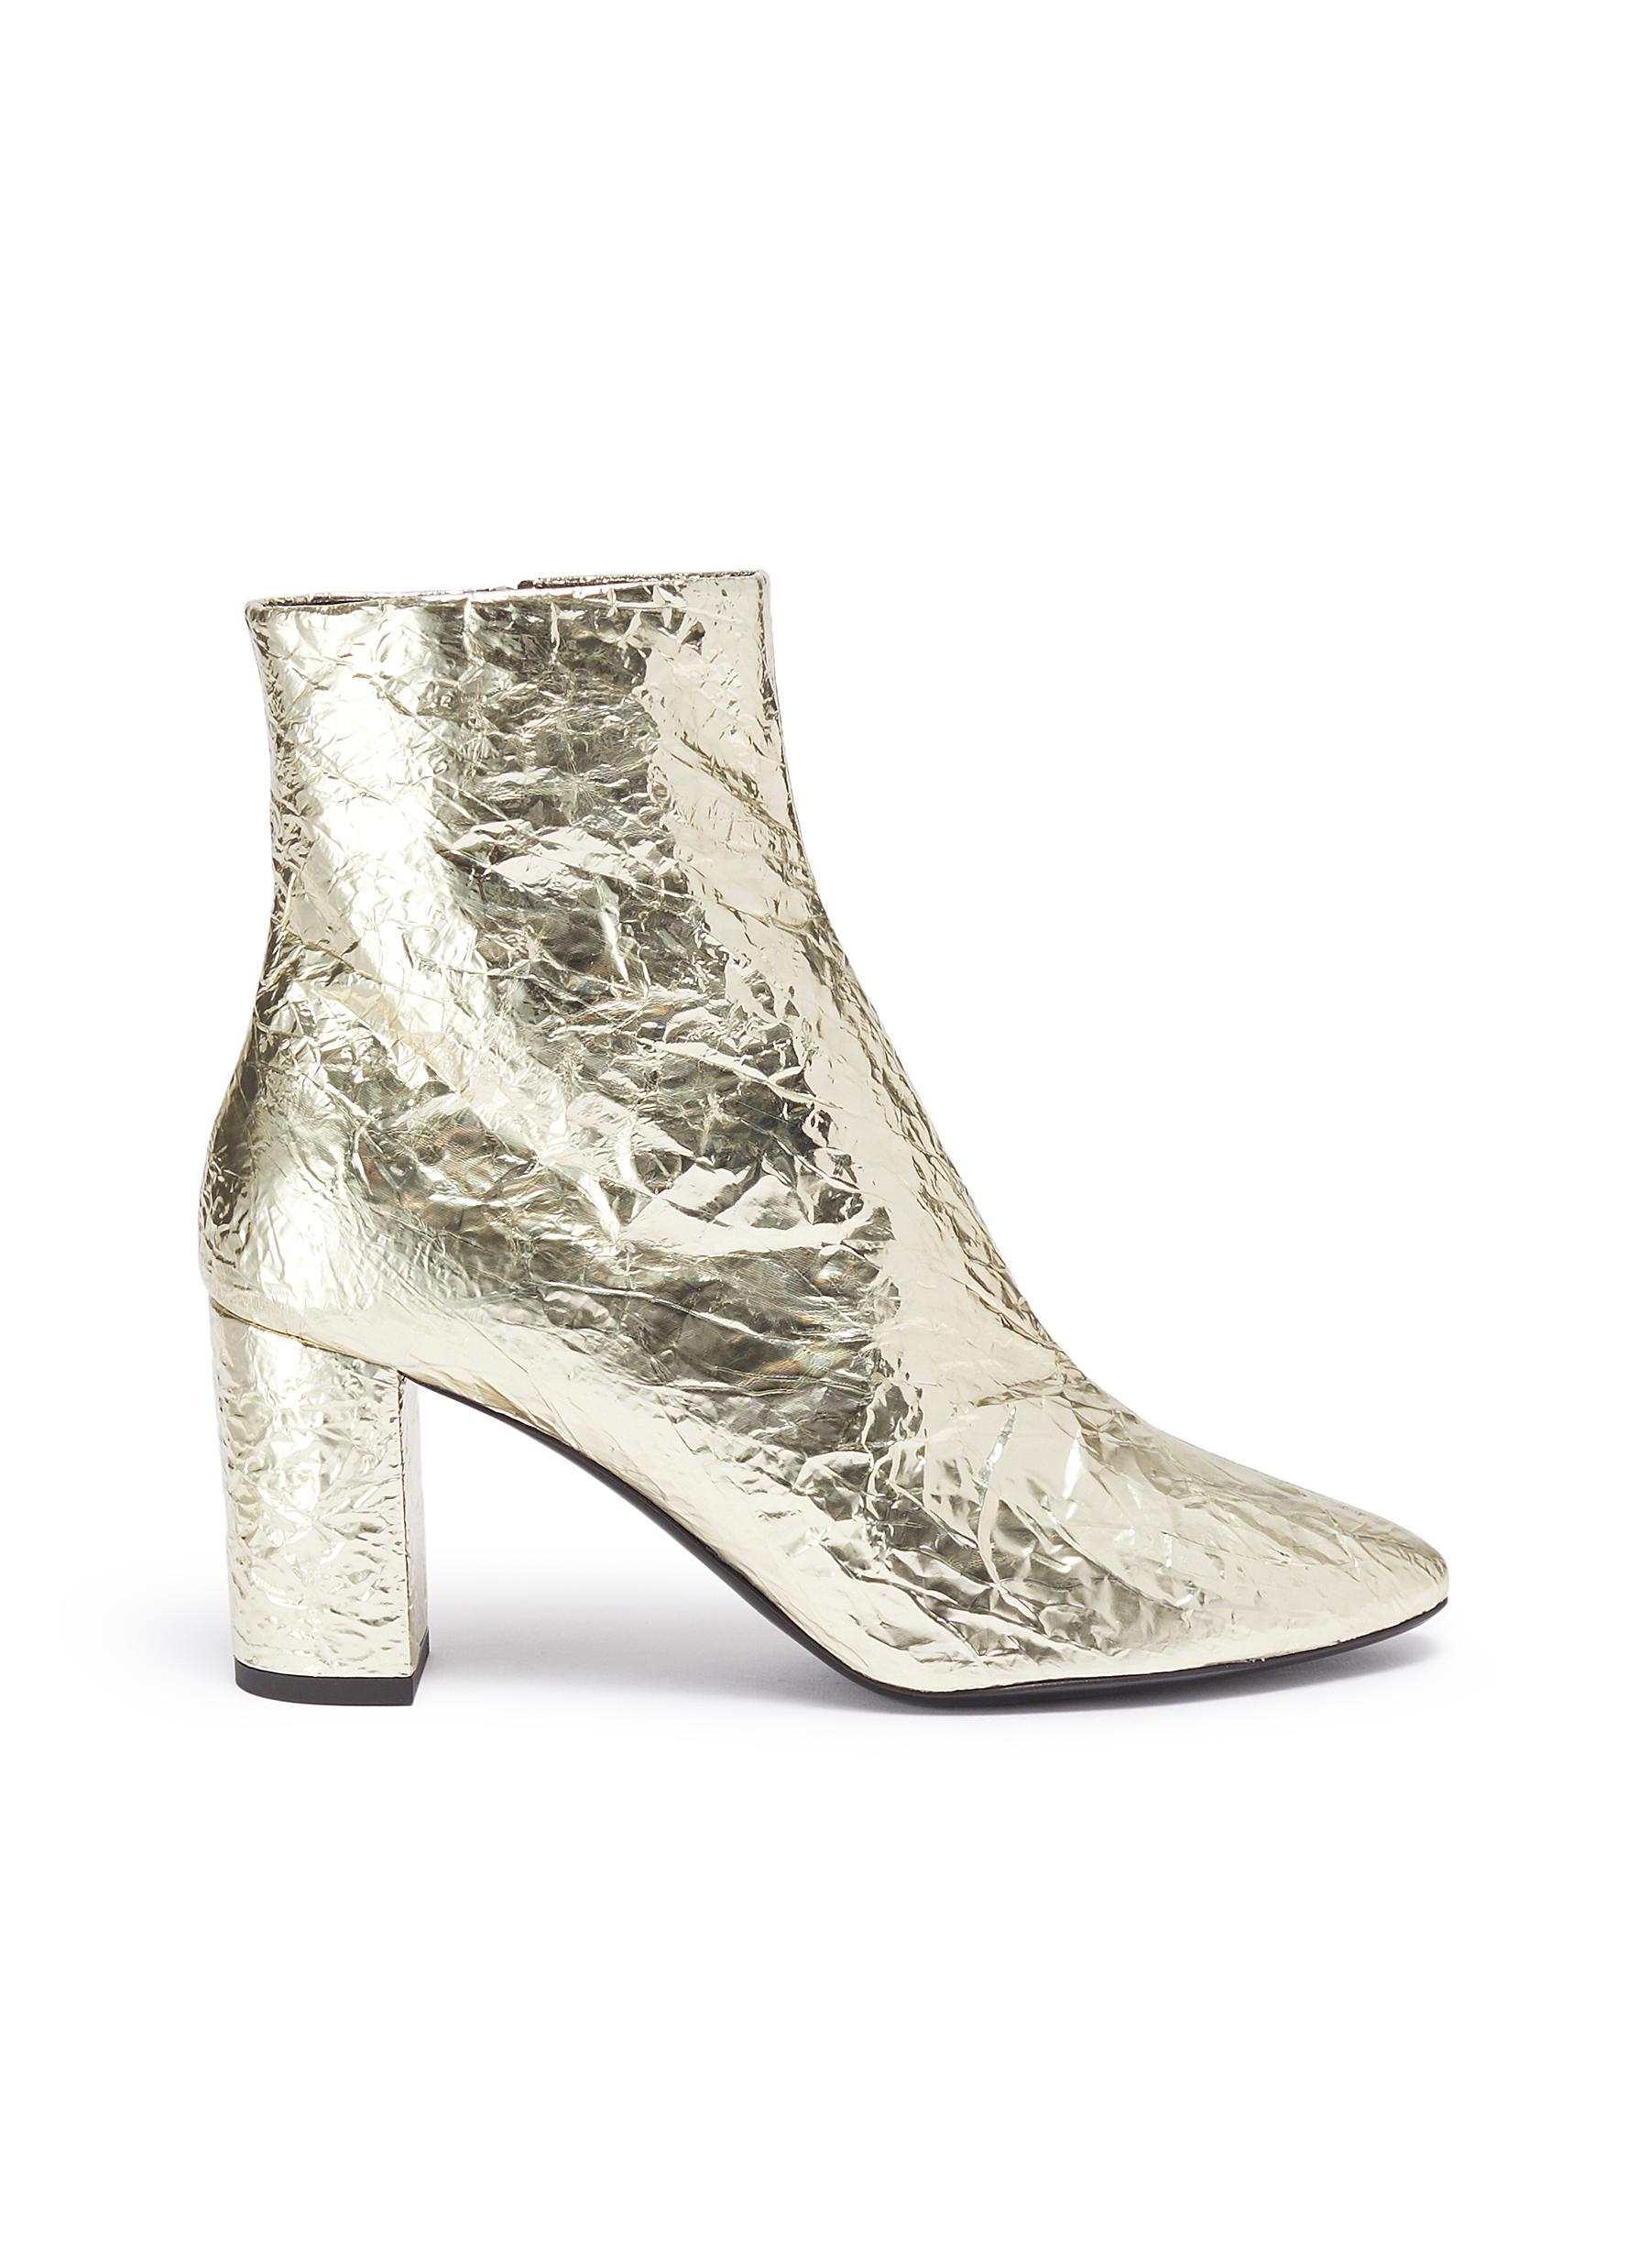 Lou wrinkled metallic leather ankle boots by Saint Laurent